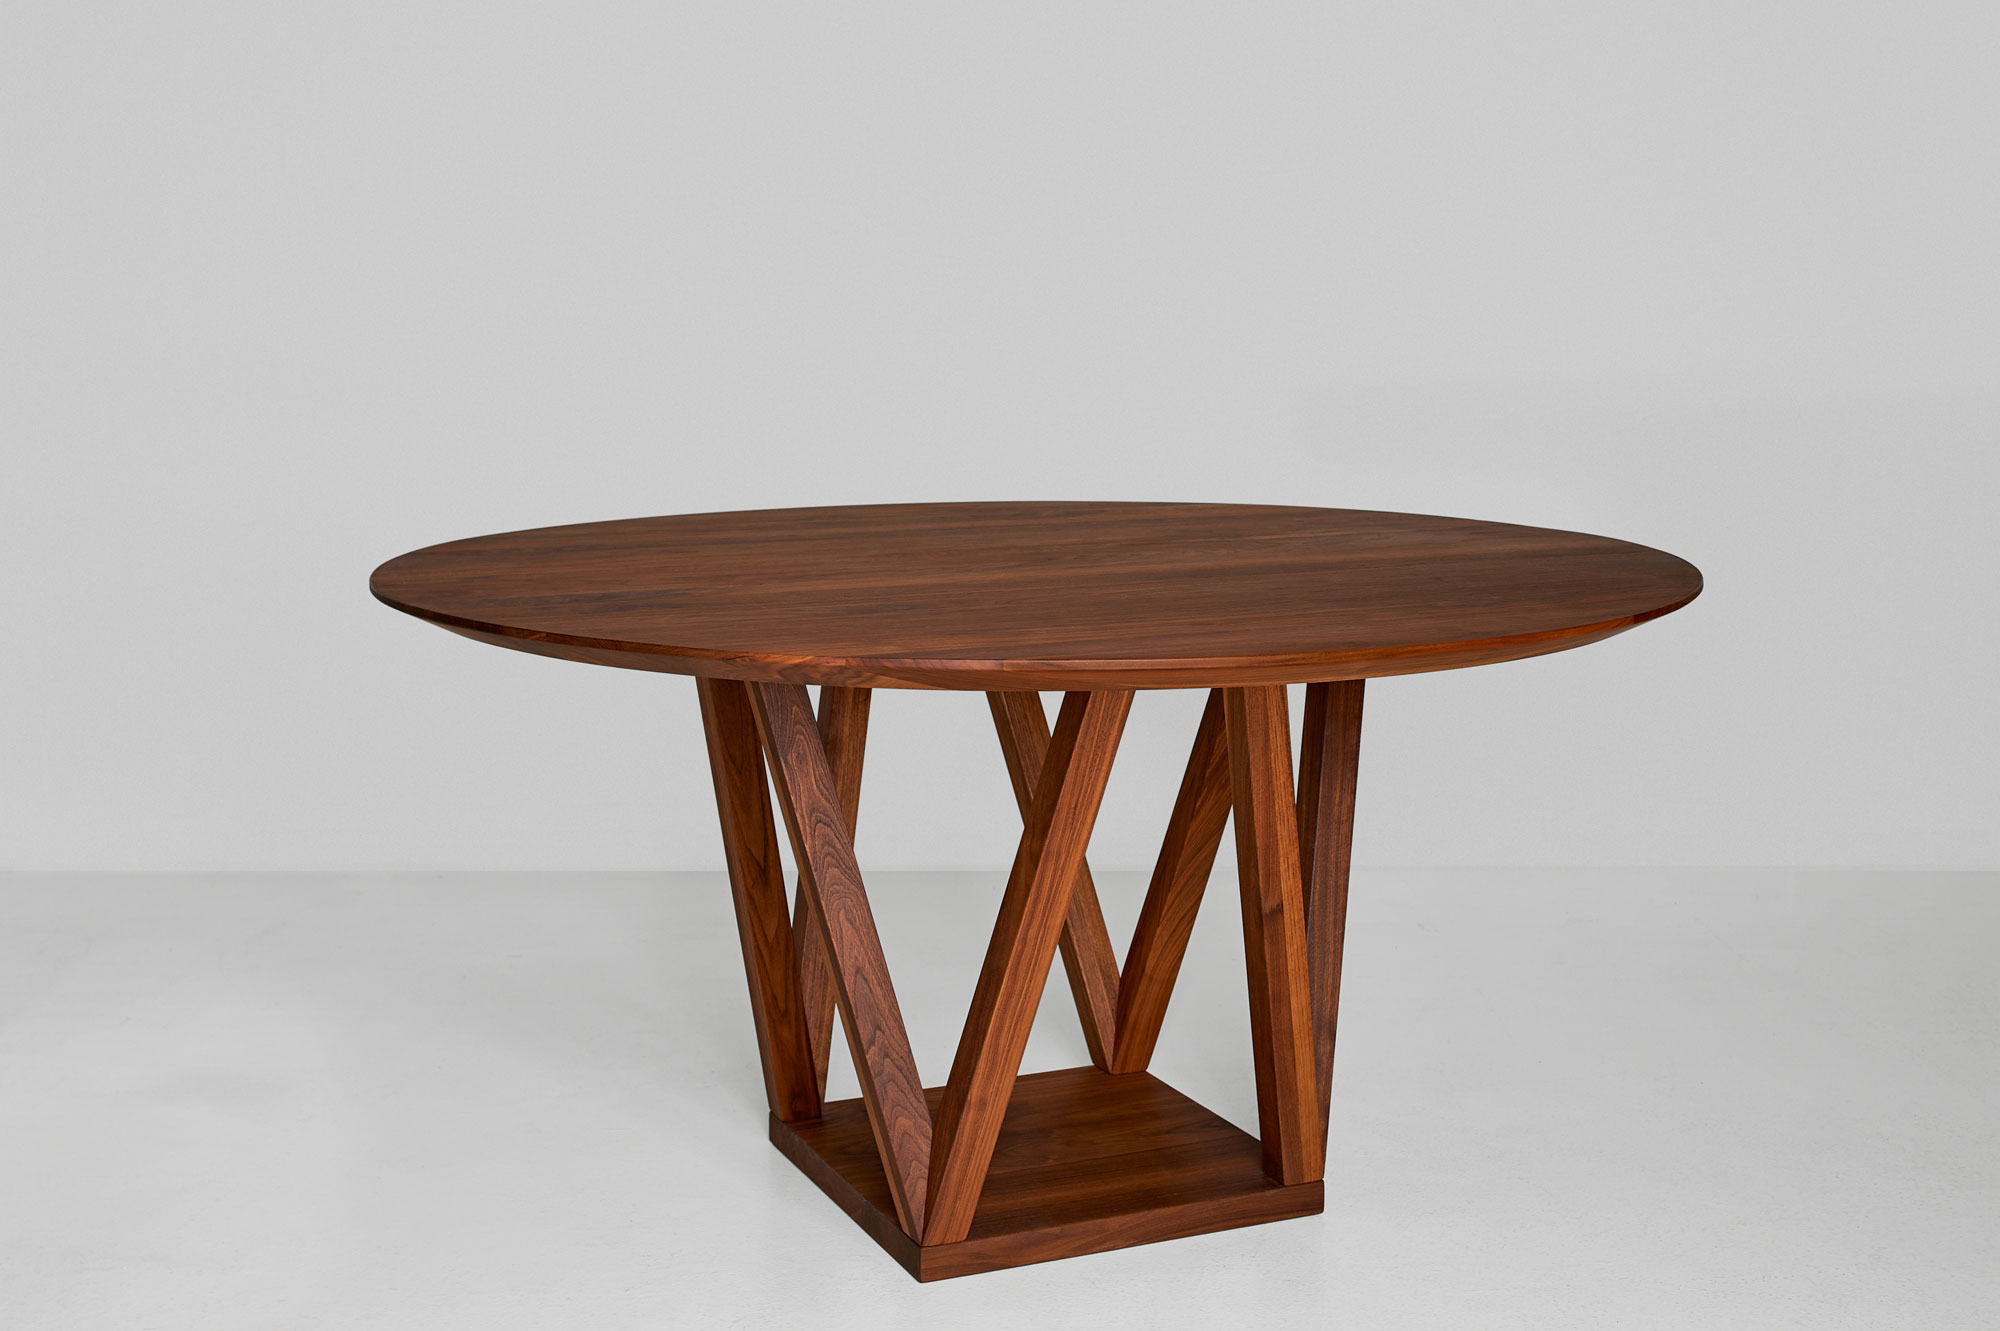 Linoleum Design Table CREO LINO 0993 custom made in solid wood by vitamin design